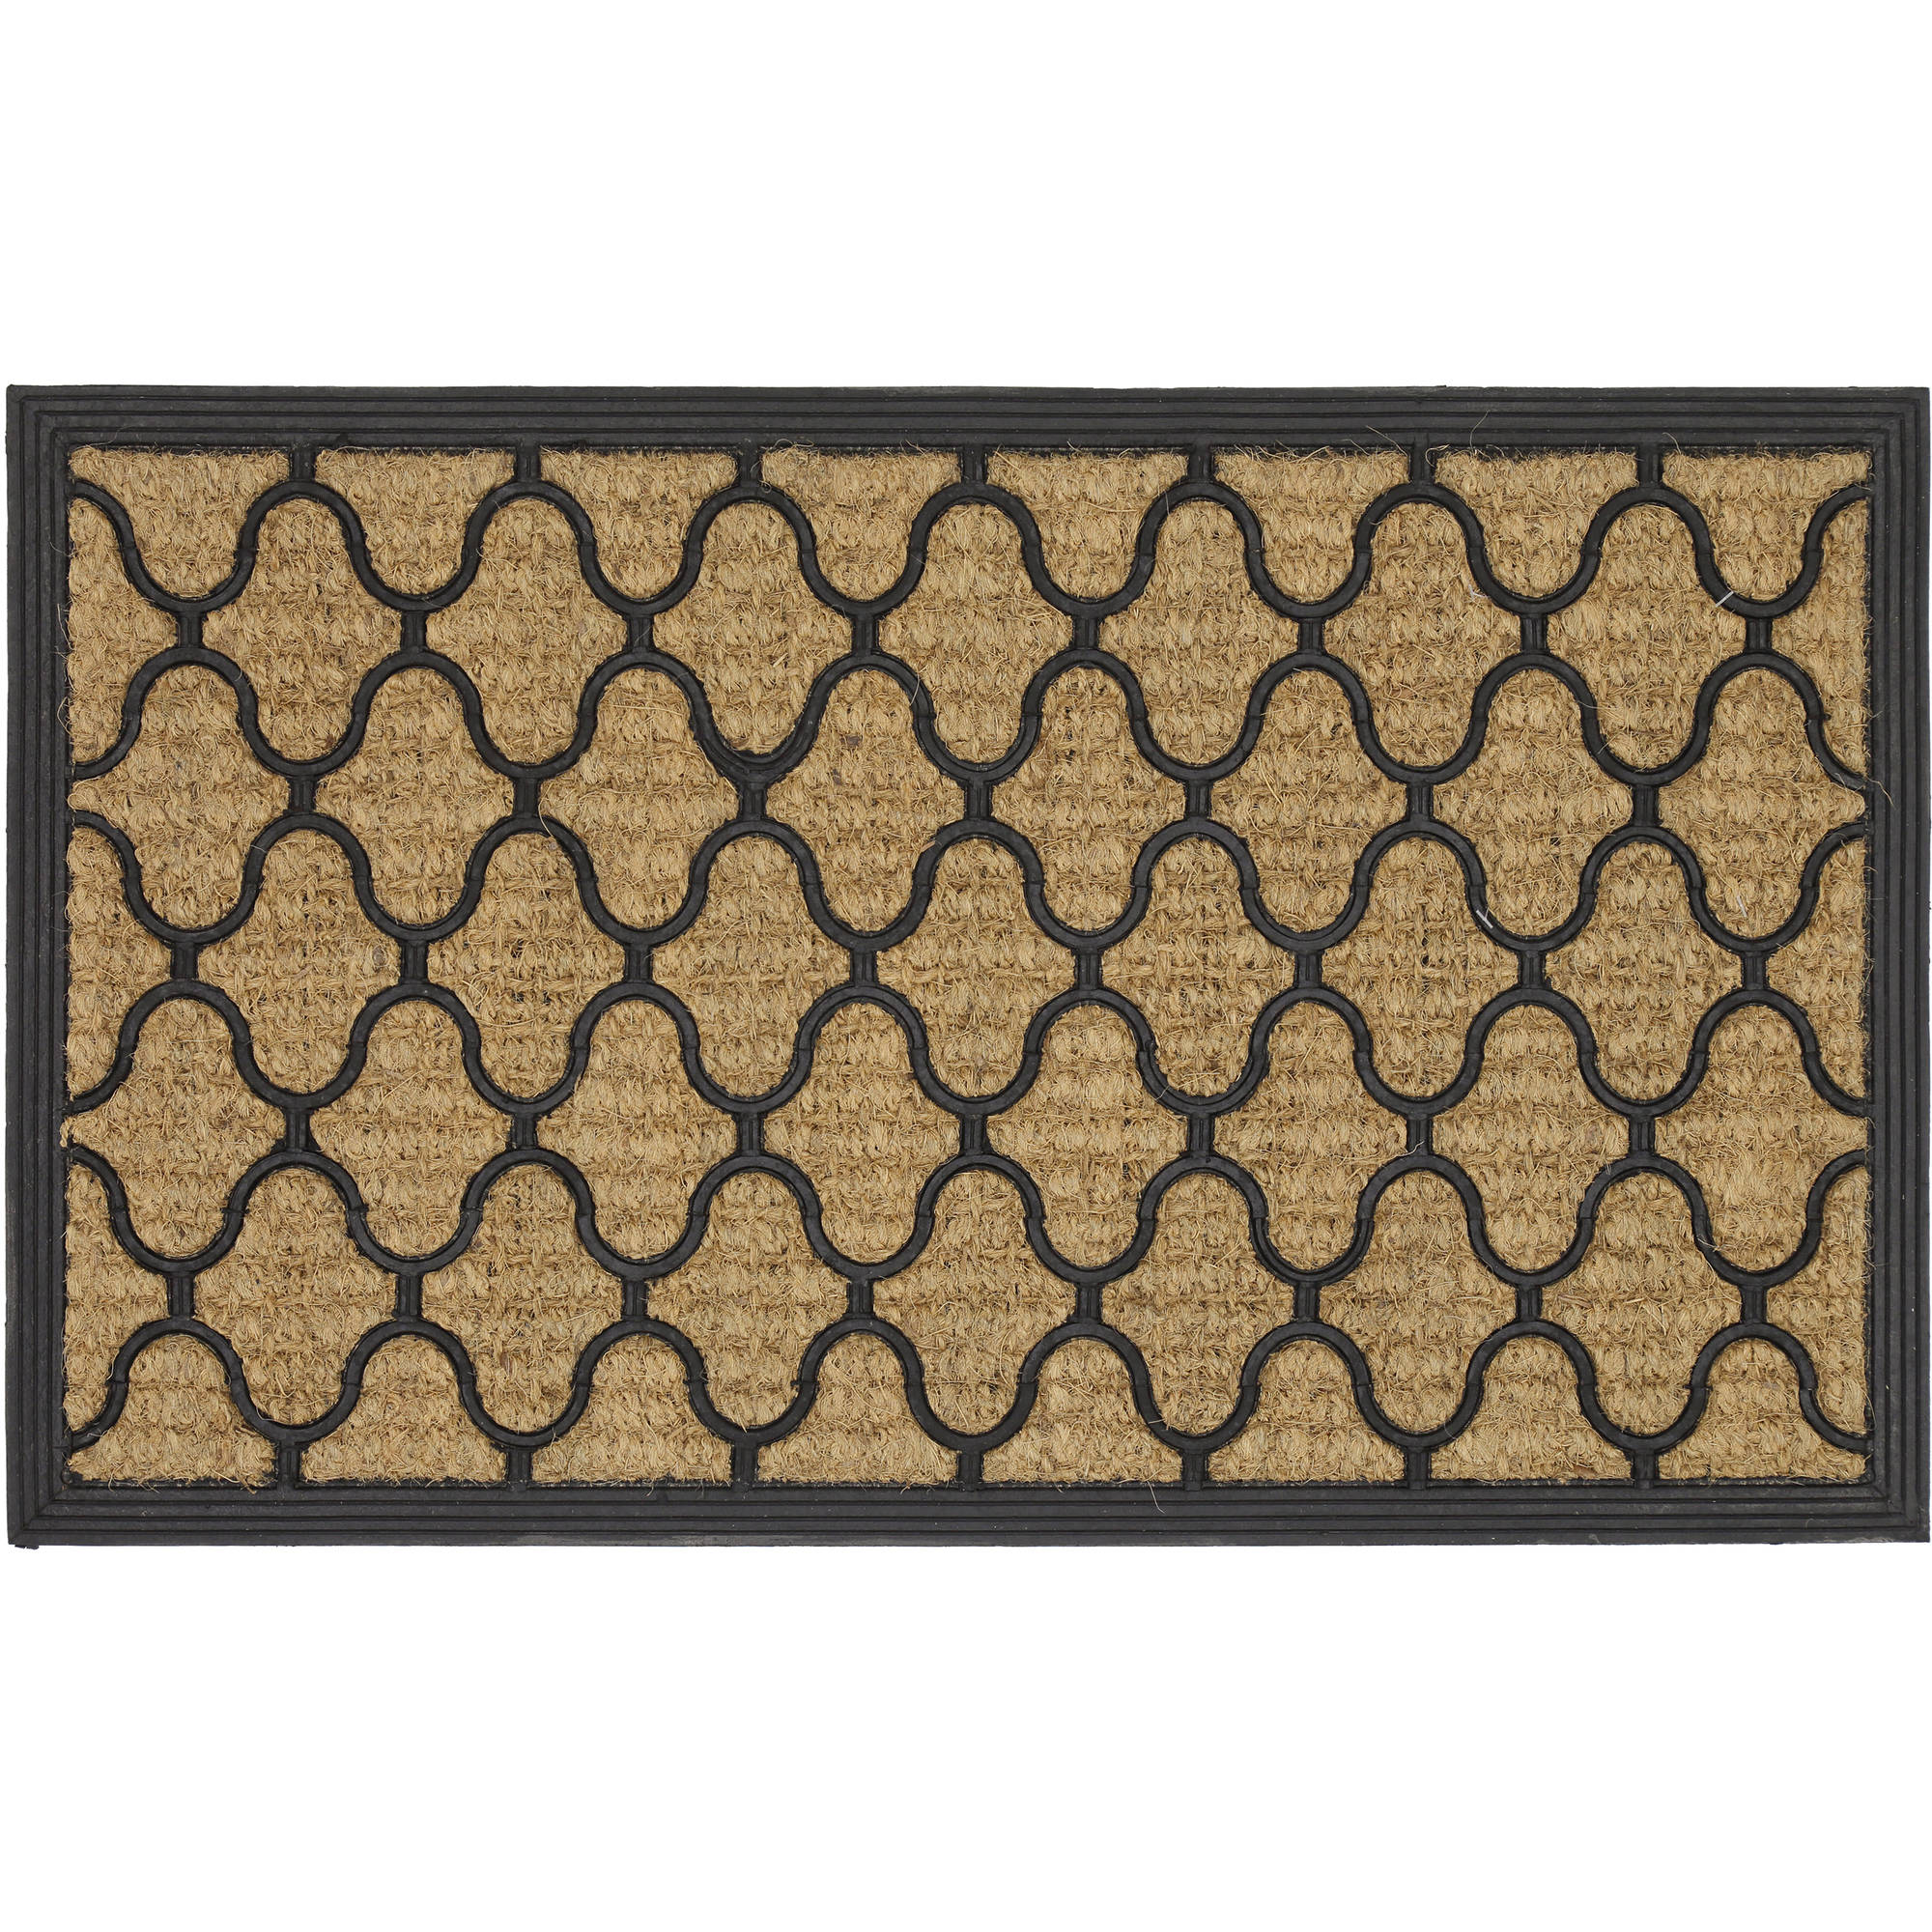 decoration design door awesome doormat weather com robert guard maude indoor plumb store mats ibmeye htm ideas